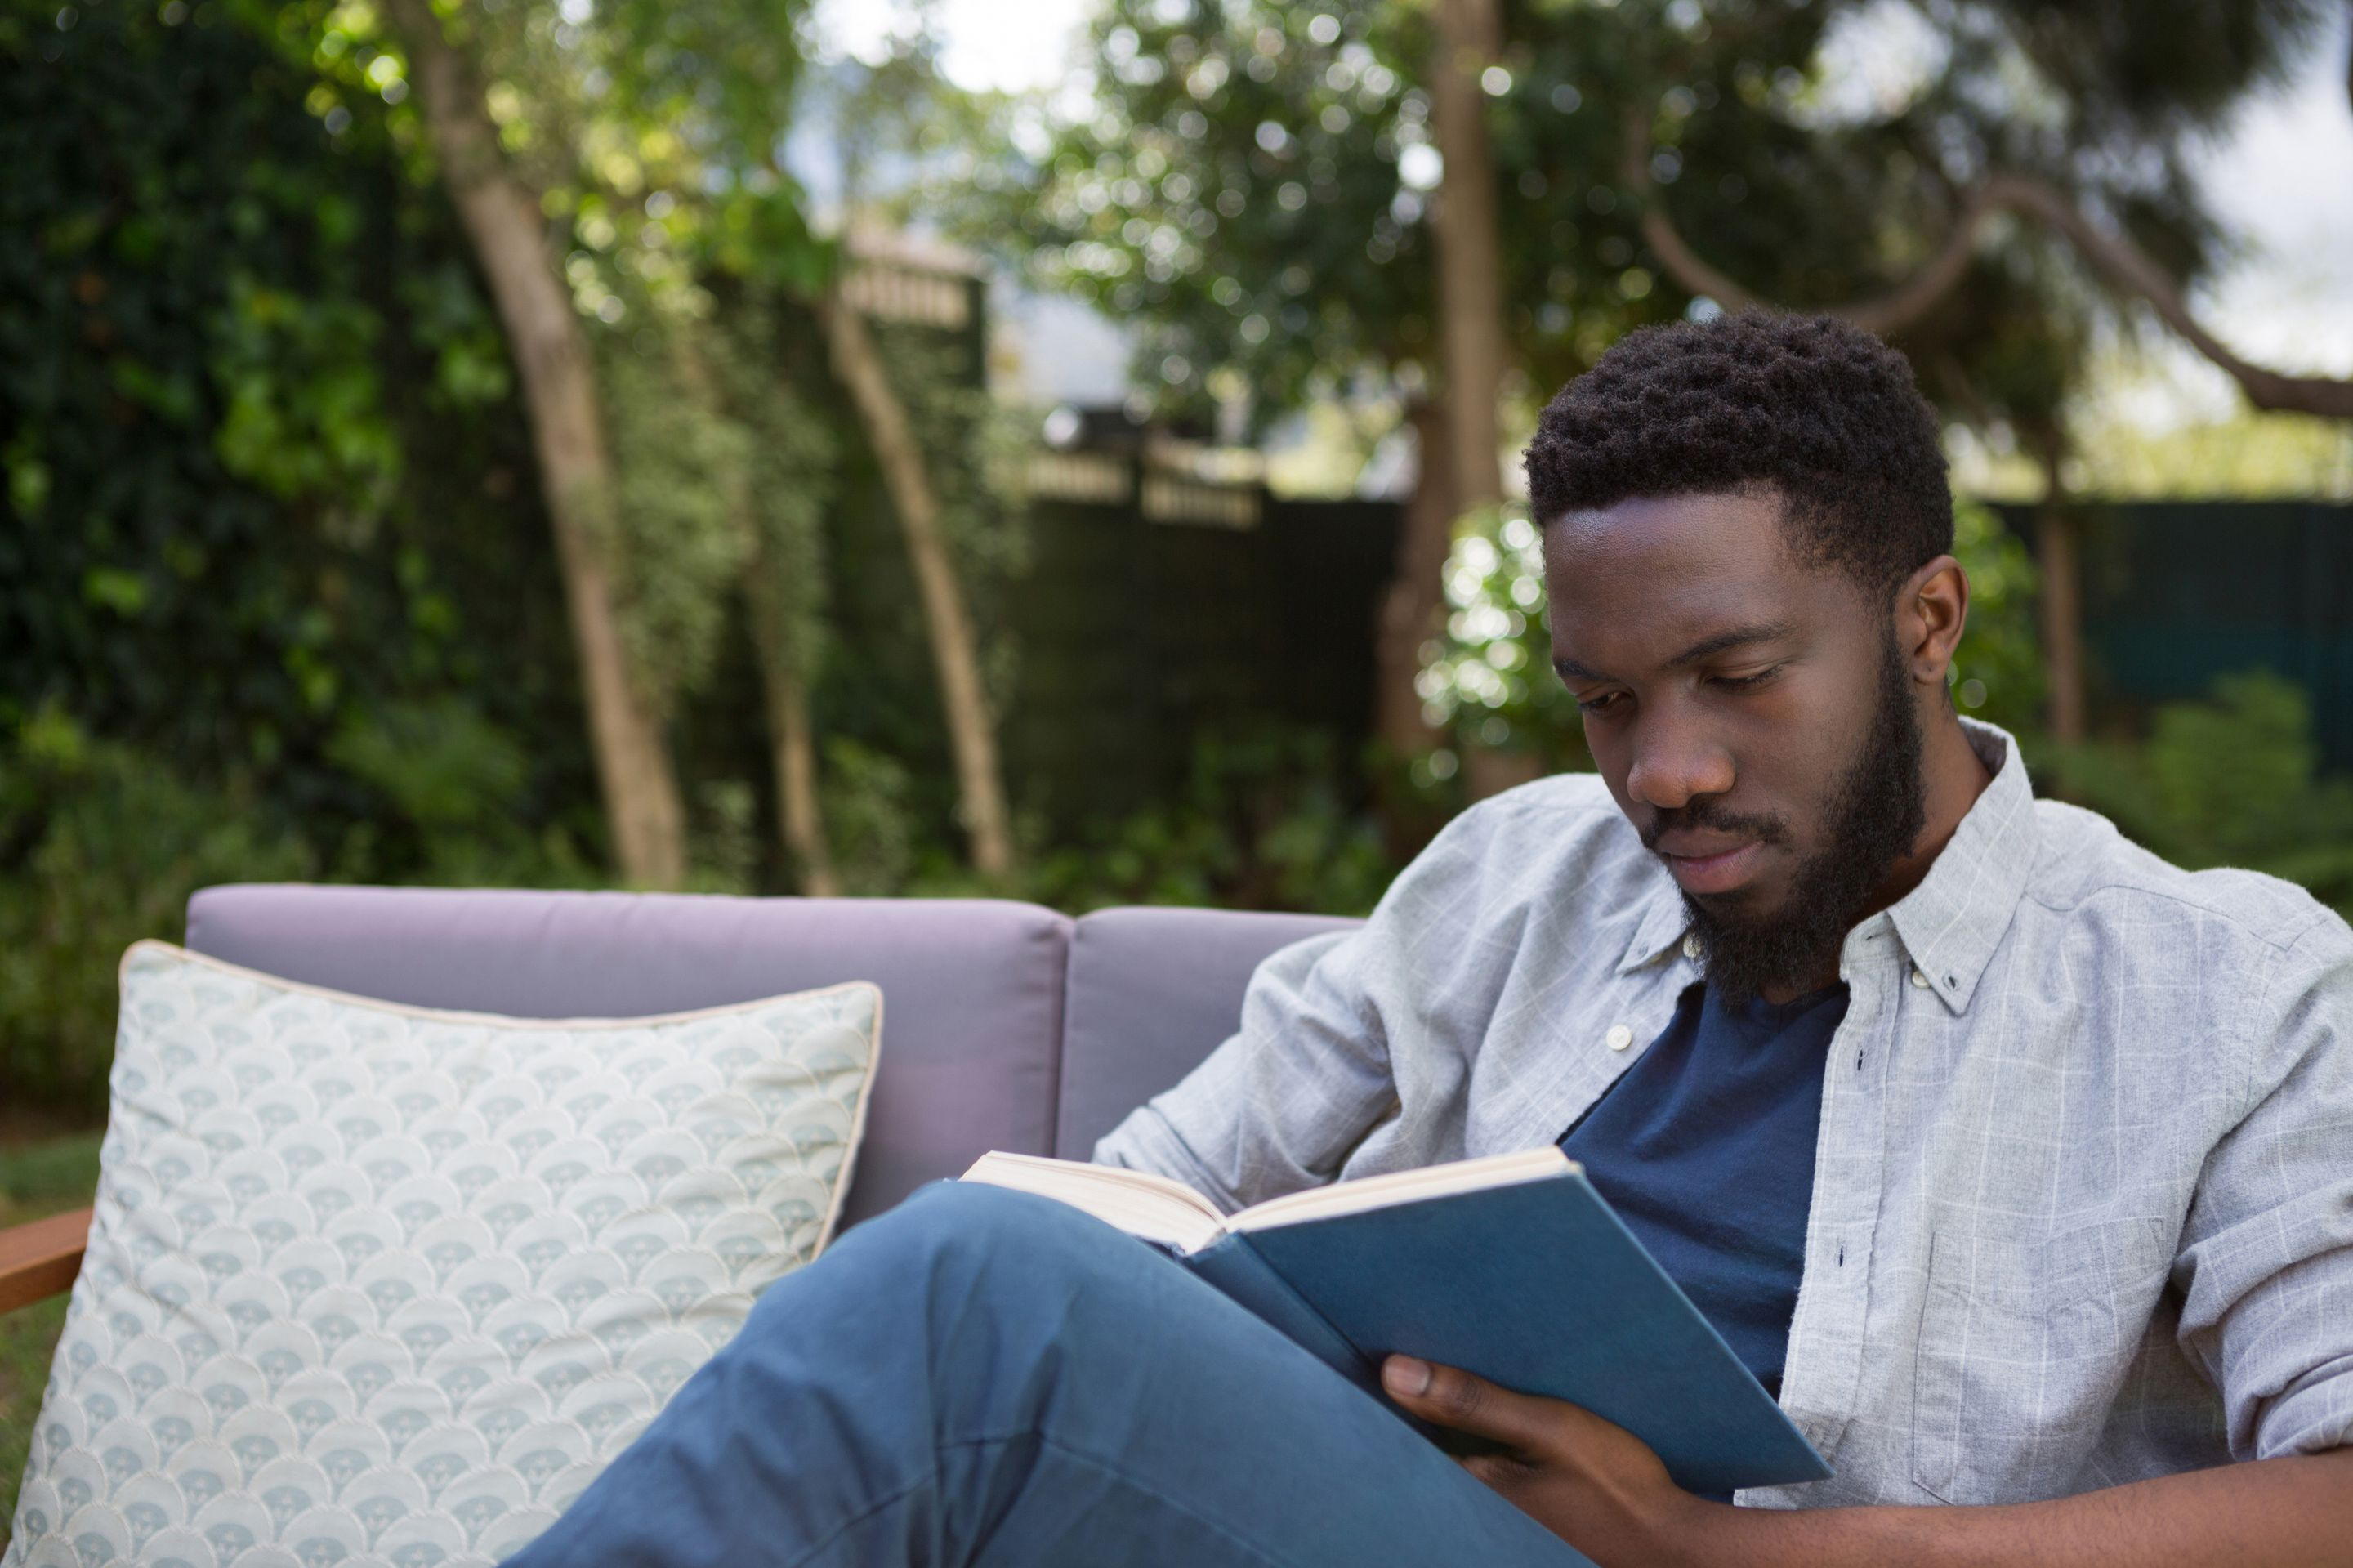 Man reading a book on an outdoor patio